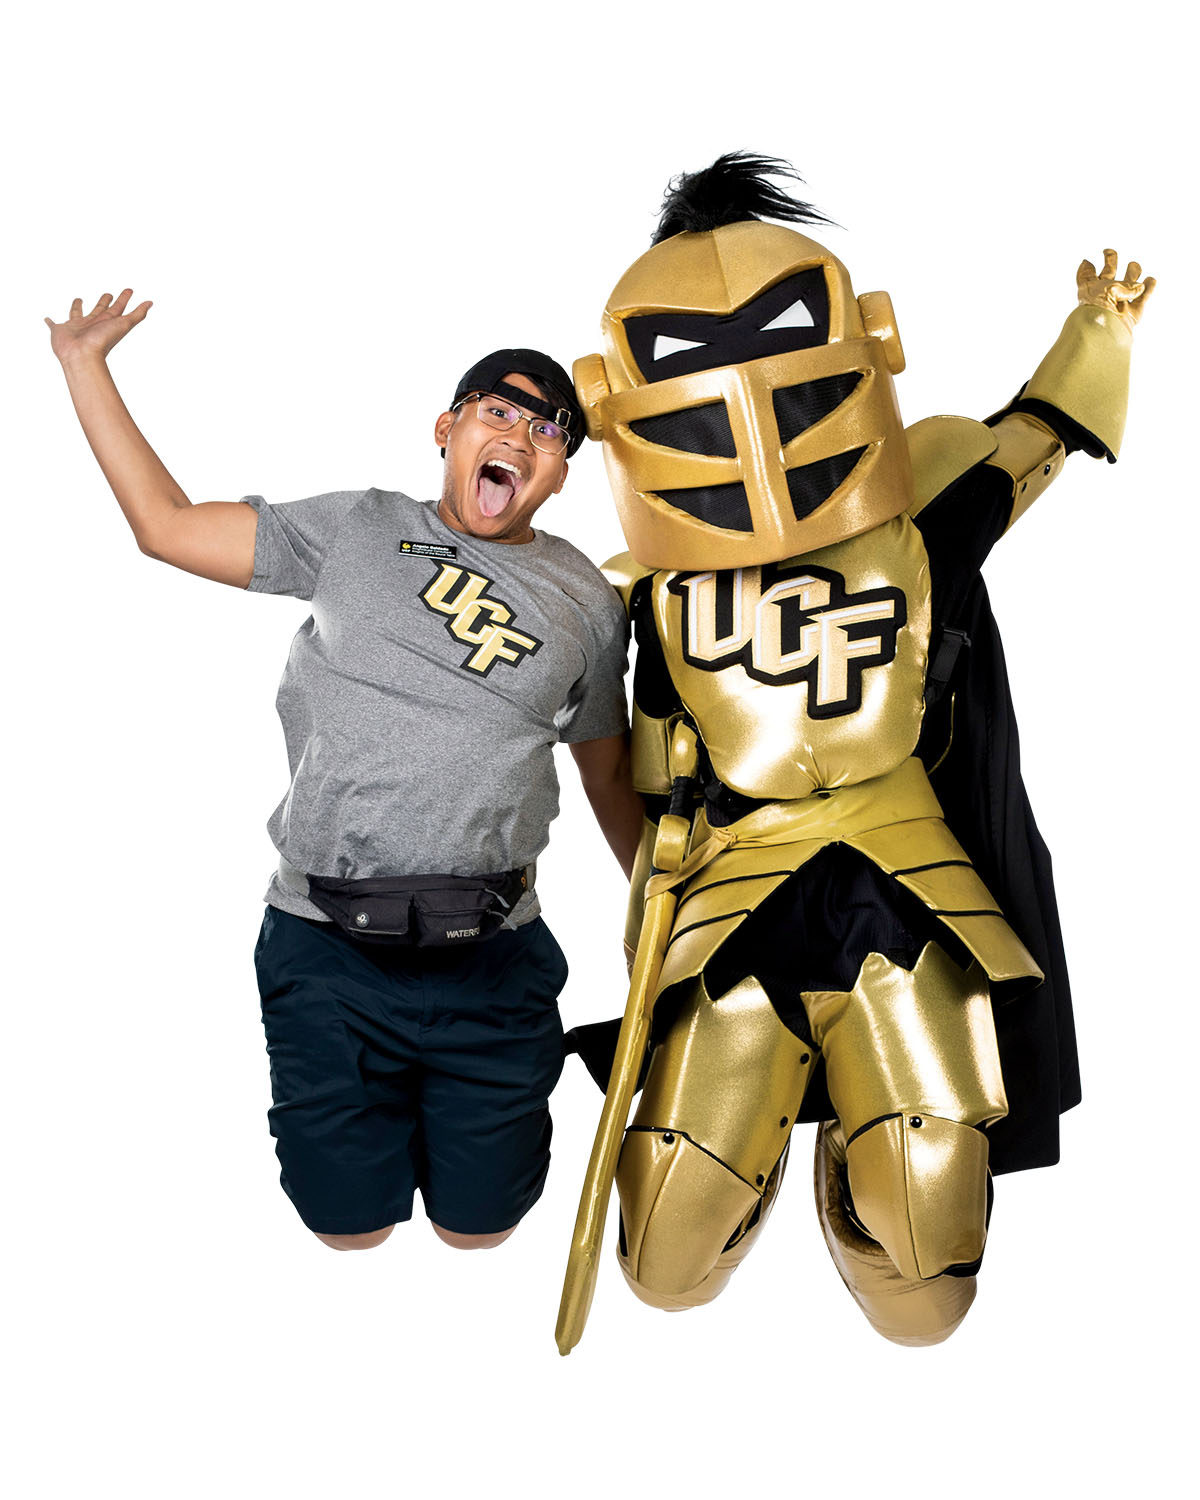 A man wearing a grey UCF shirt jumps in the air along someone in a knight costume.